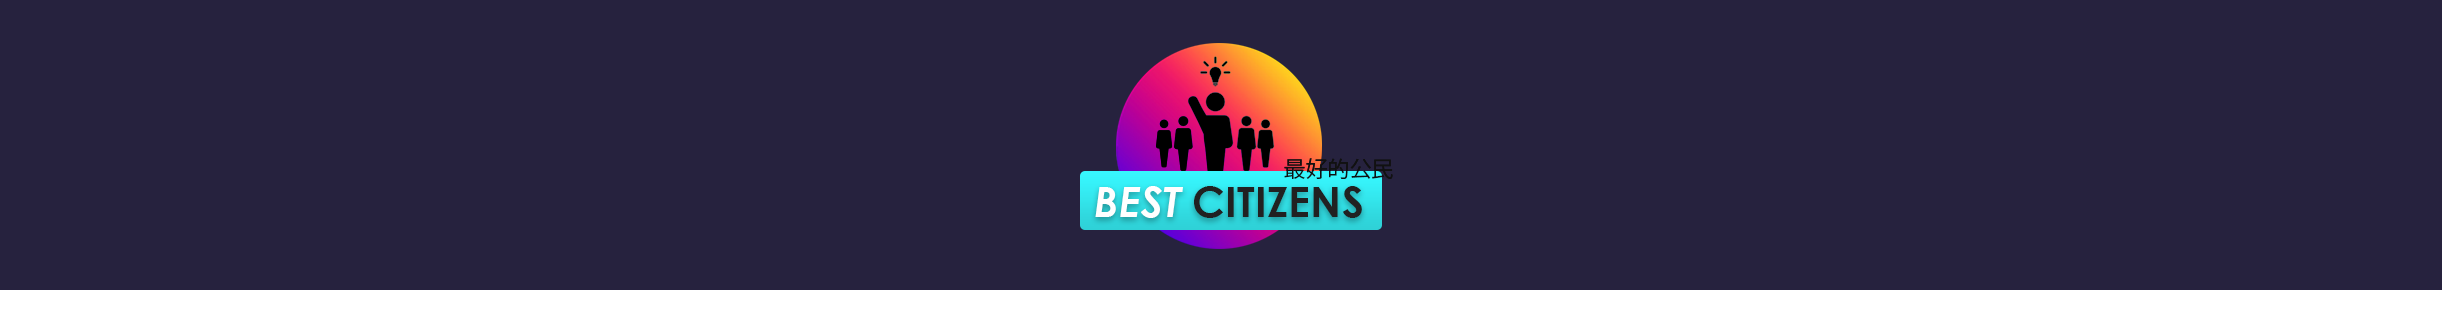 Best Citizens